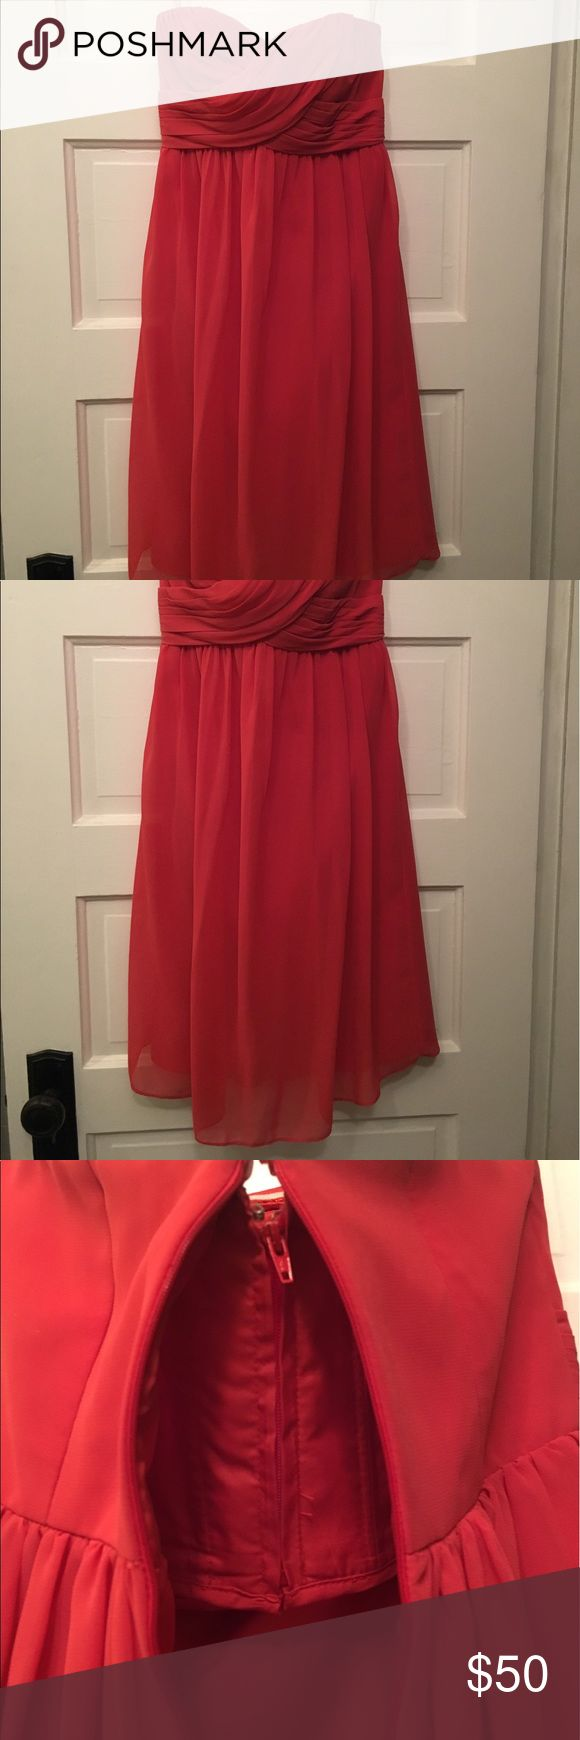 Bill Levkoff Bridesmaid Dress - Strapless Fitted at the top with a flowing, knee length skirt. Built in bra provides extra comfort and security. Worn once for a wedding. The color is Persimmon on the color chart for Bill Levkoff. Bill Levkoff Dresses Wedding